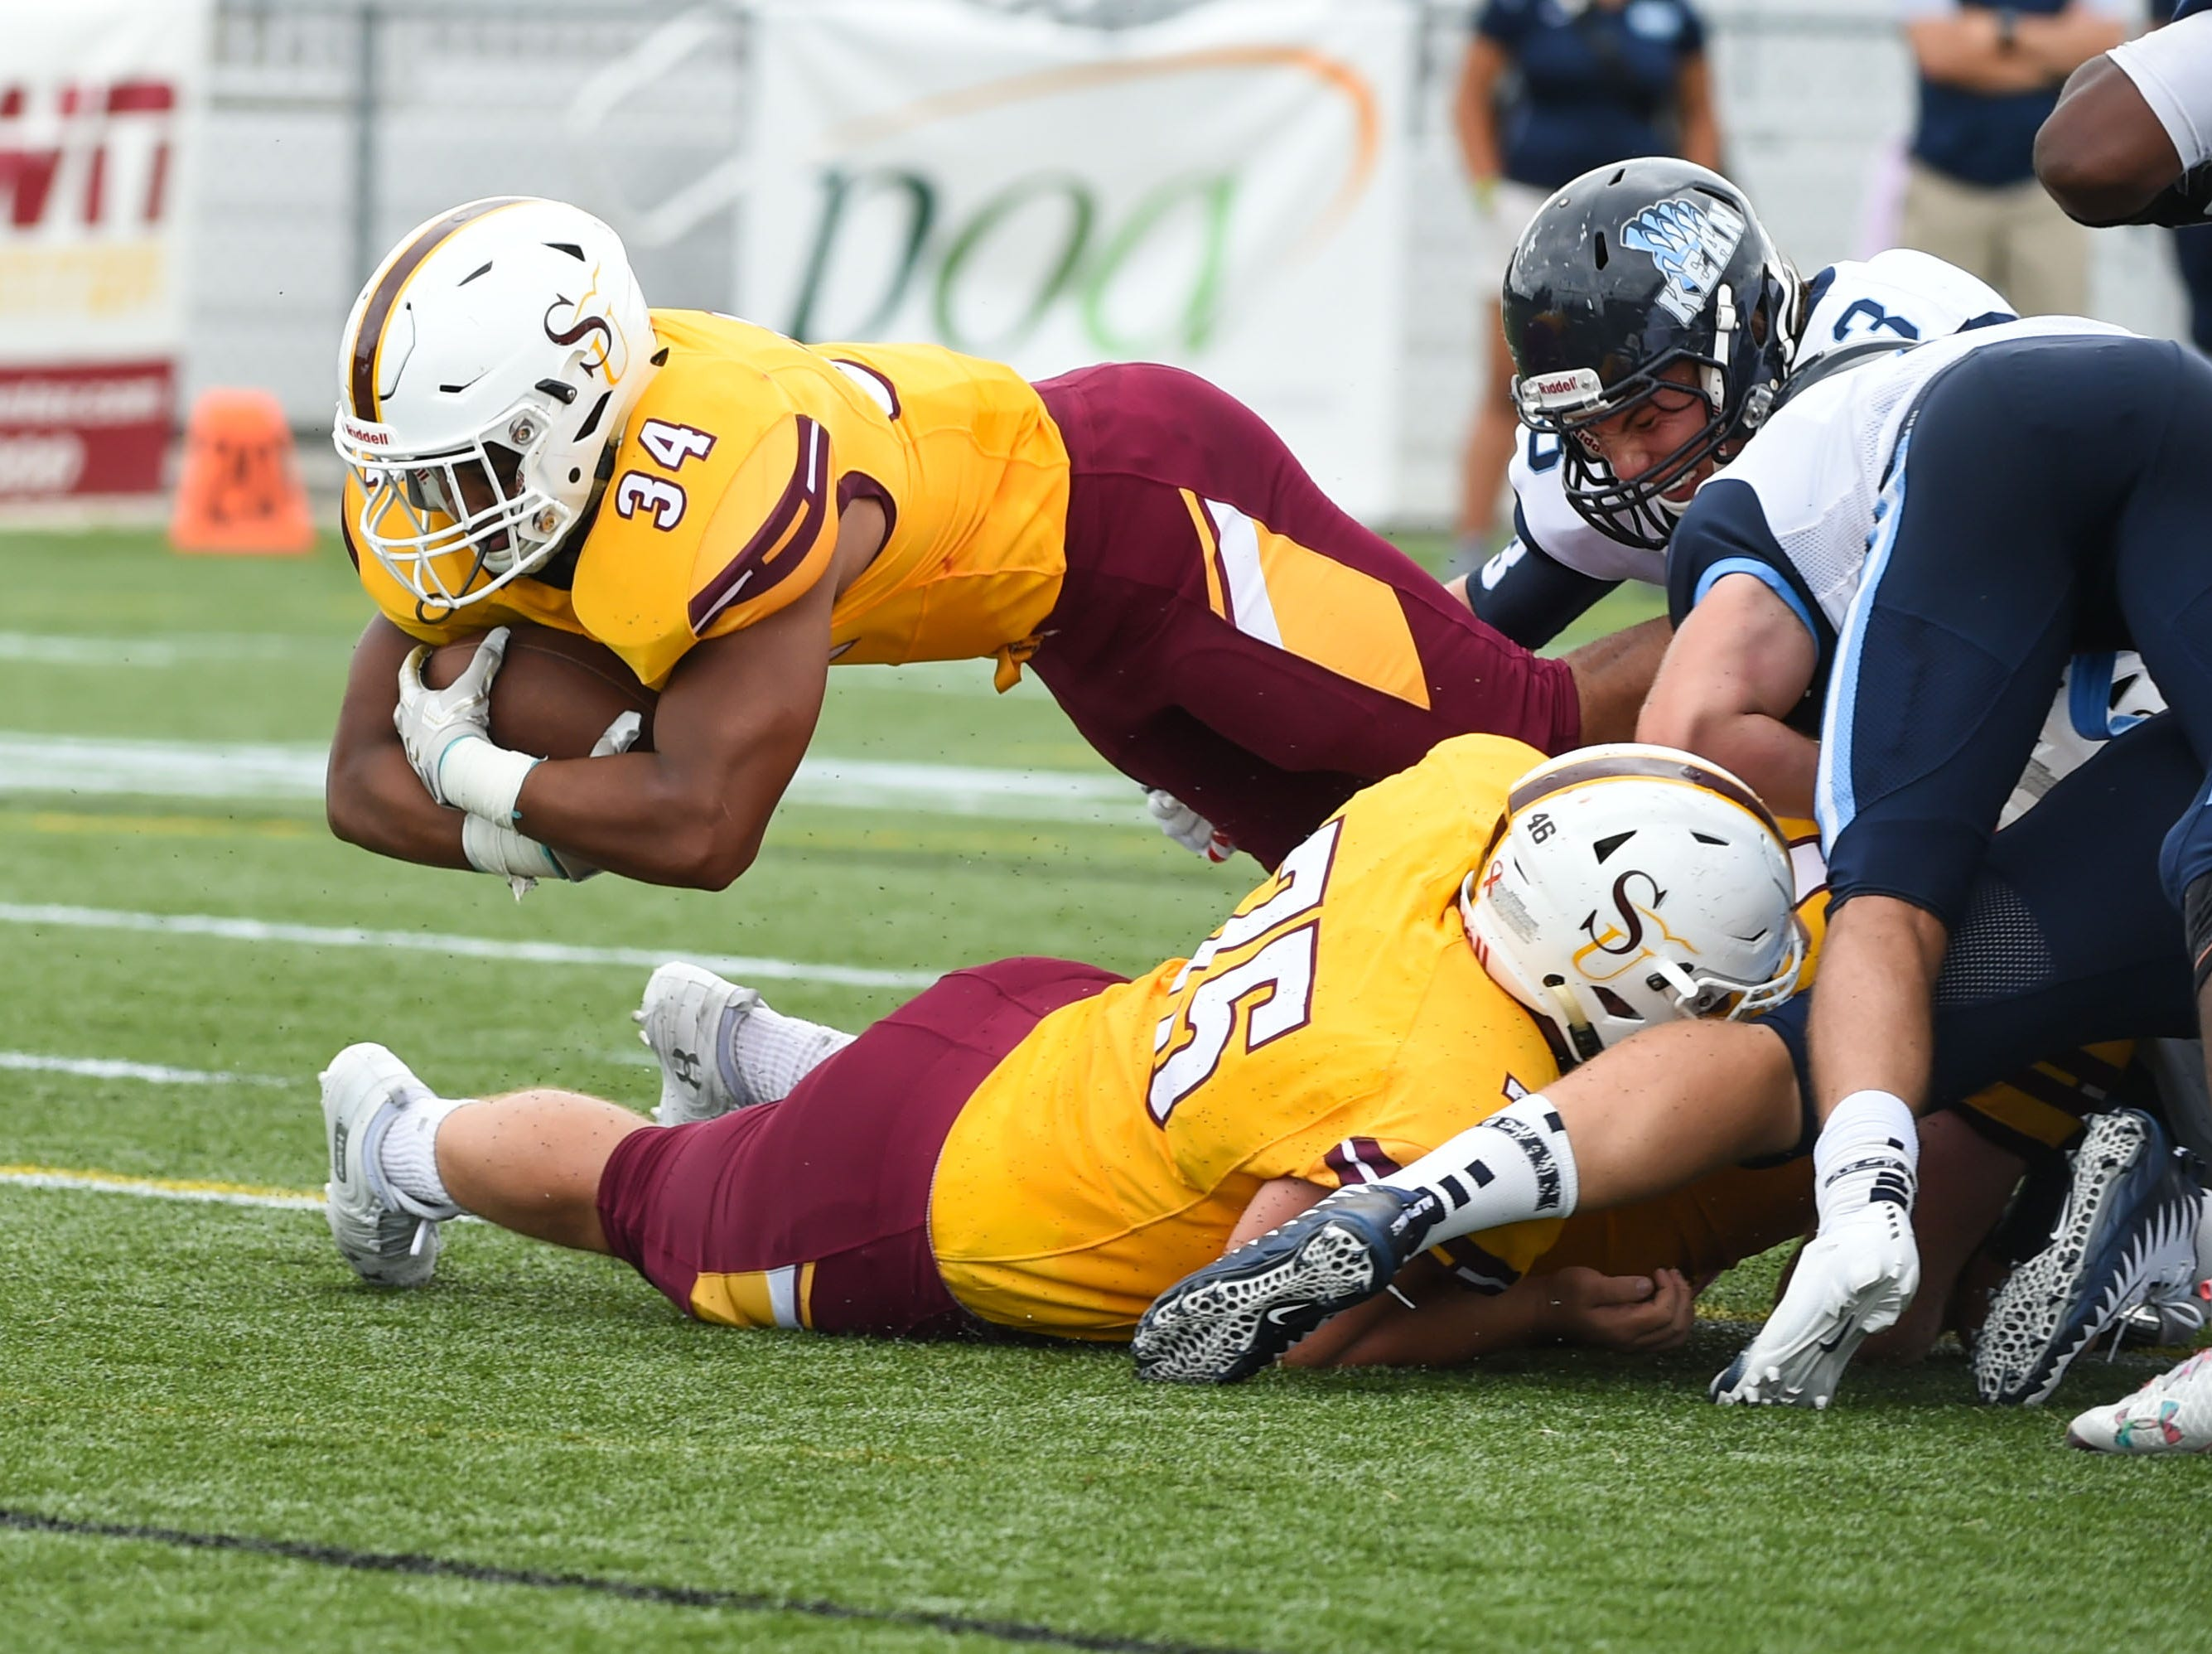 Salisbury's Kadarrius Campbell dives across the goal line for a touchdown  against Kean on Saturday, Sept. 15, 2018 at Seagull Stadium.